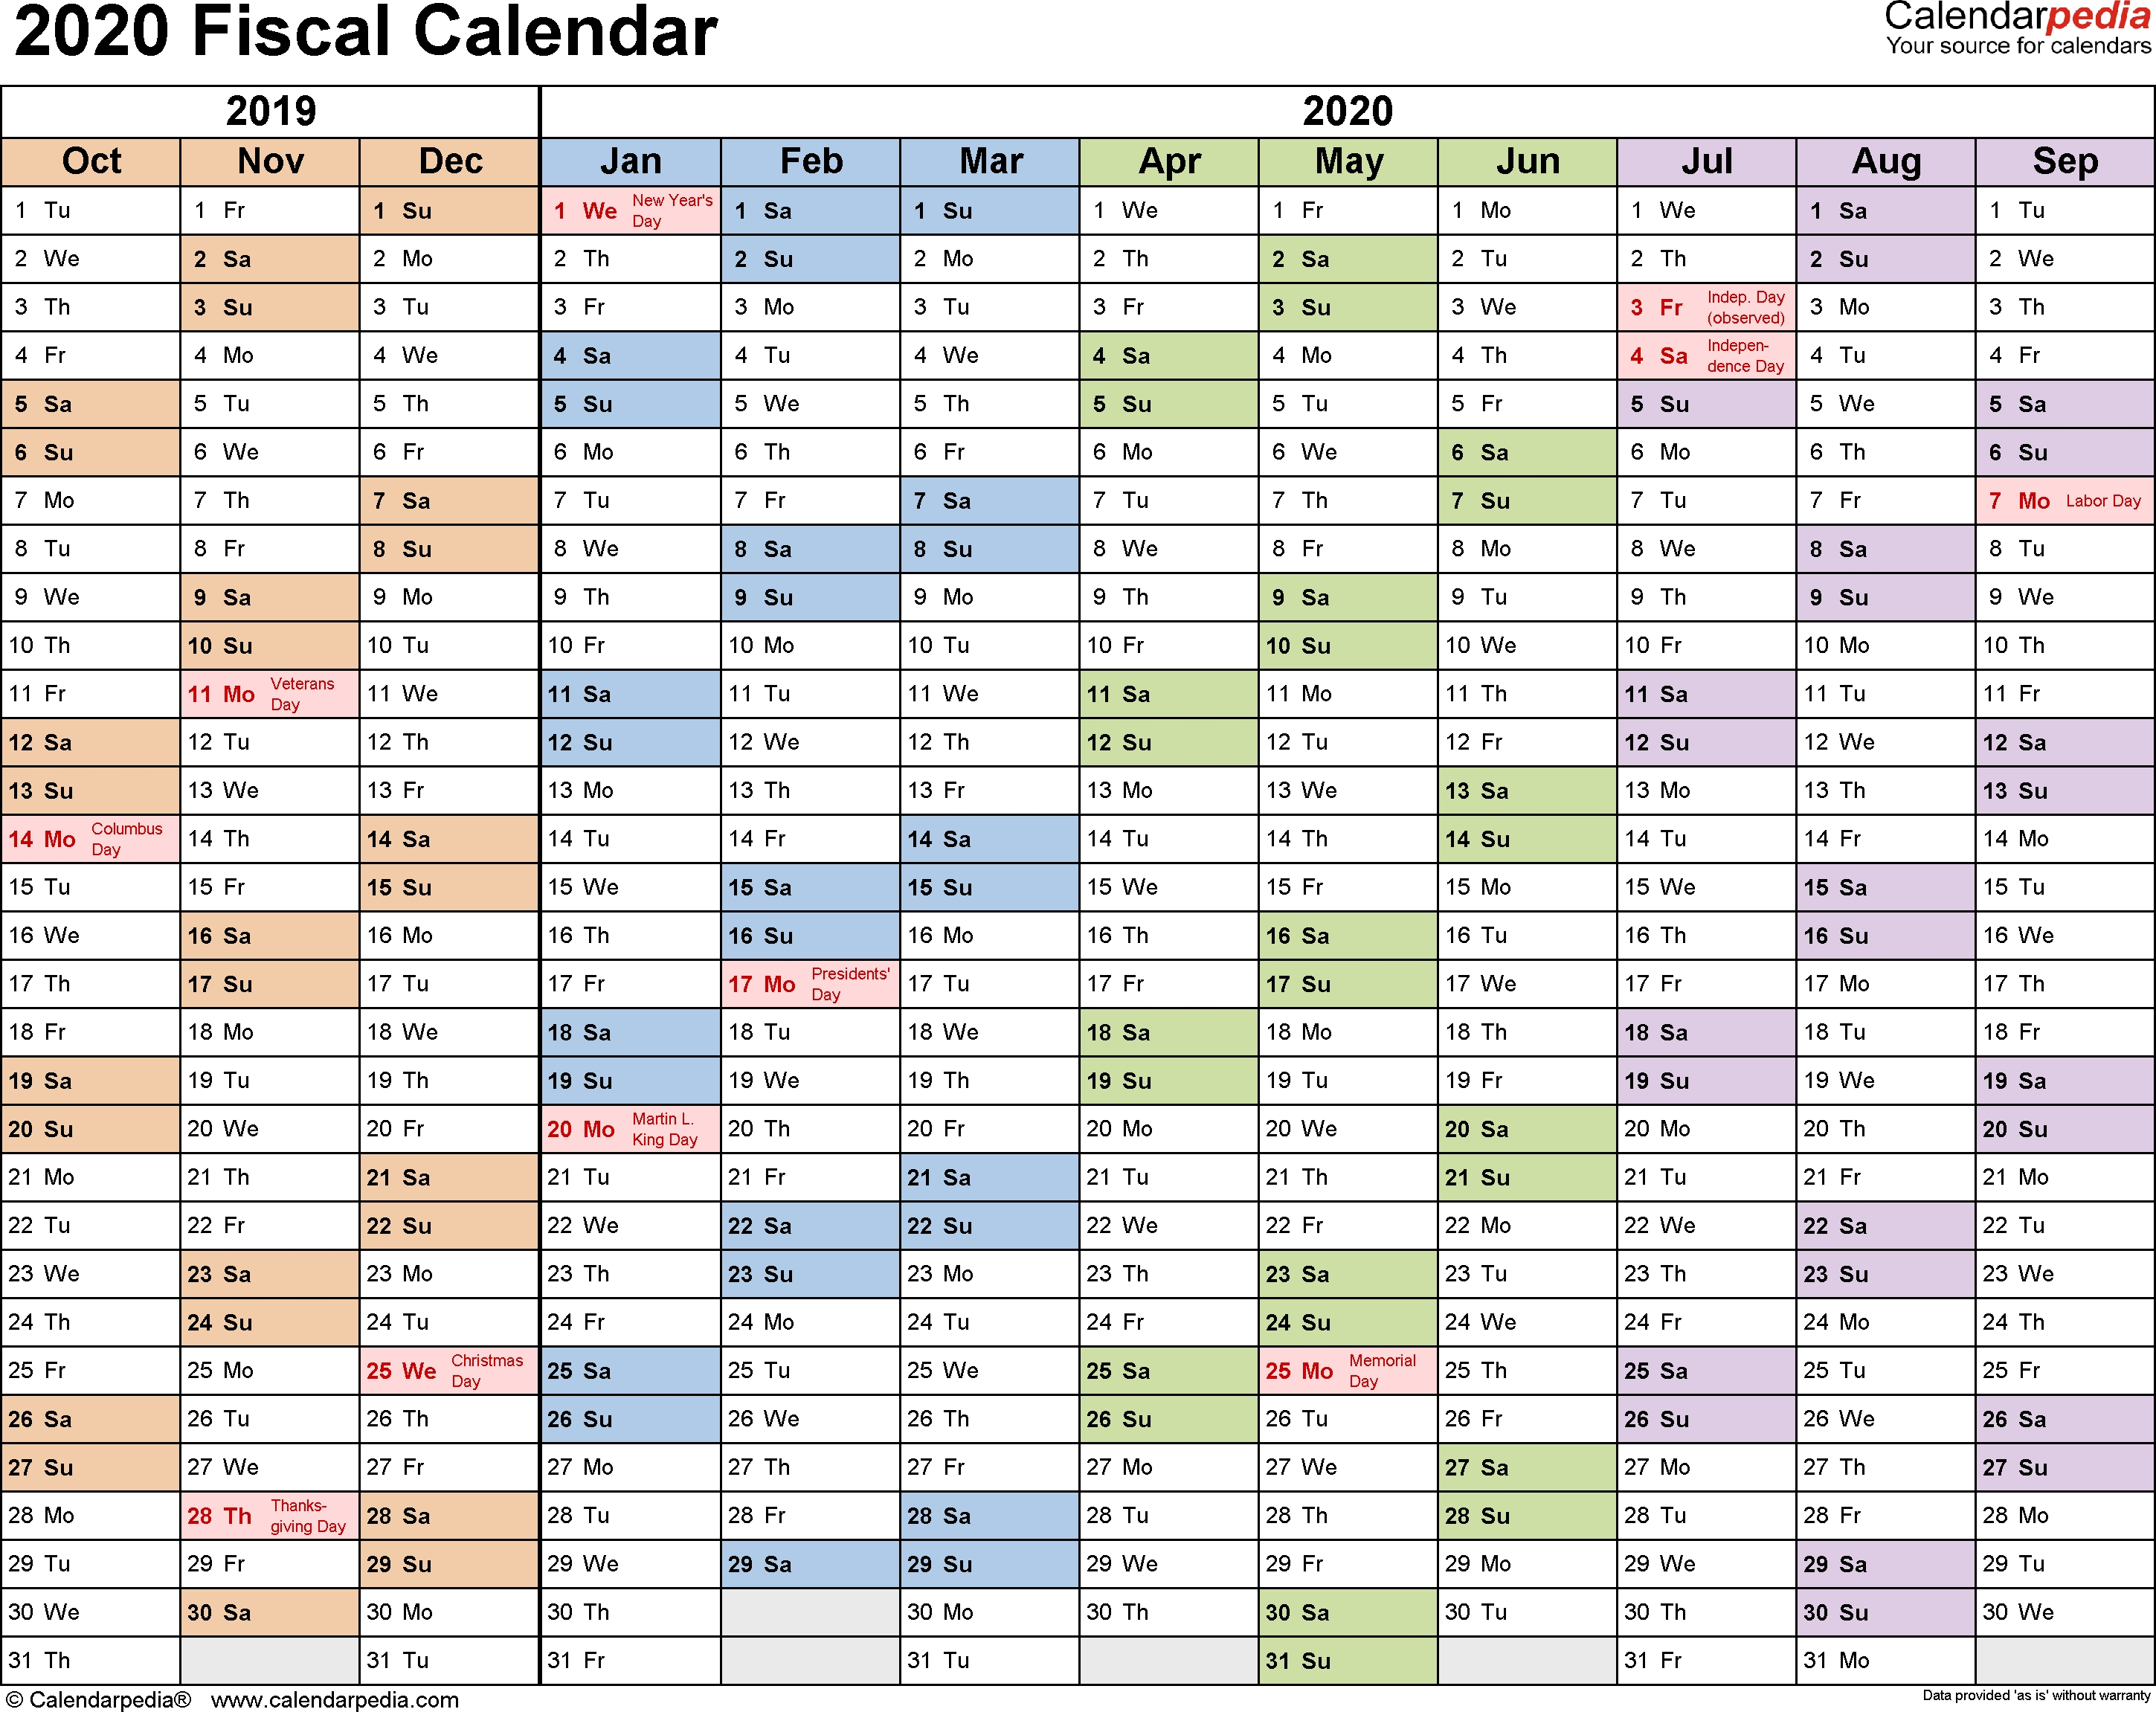 Fiscal Calendars 2020 As Free Printable Excel Templates for Calendar 2019-2020 365